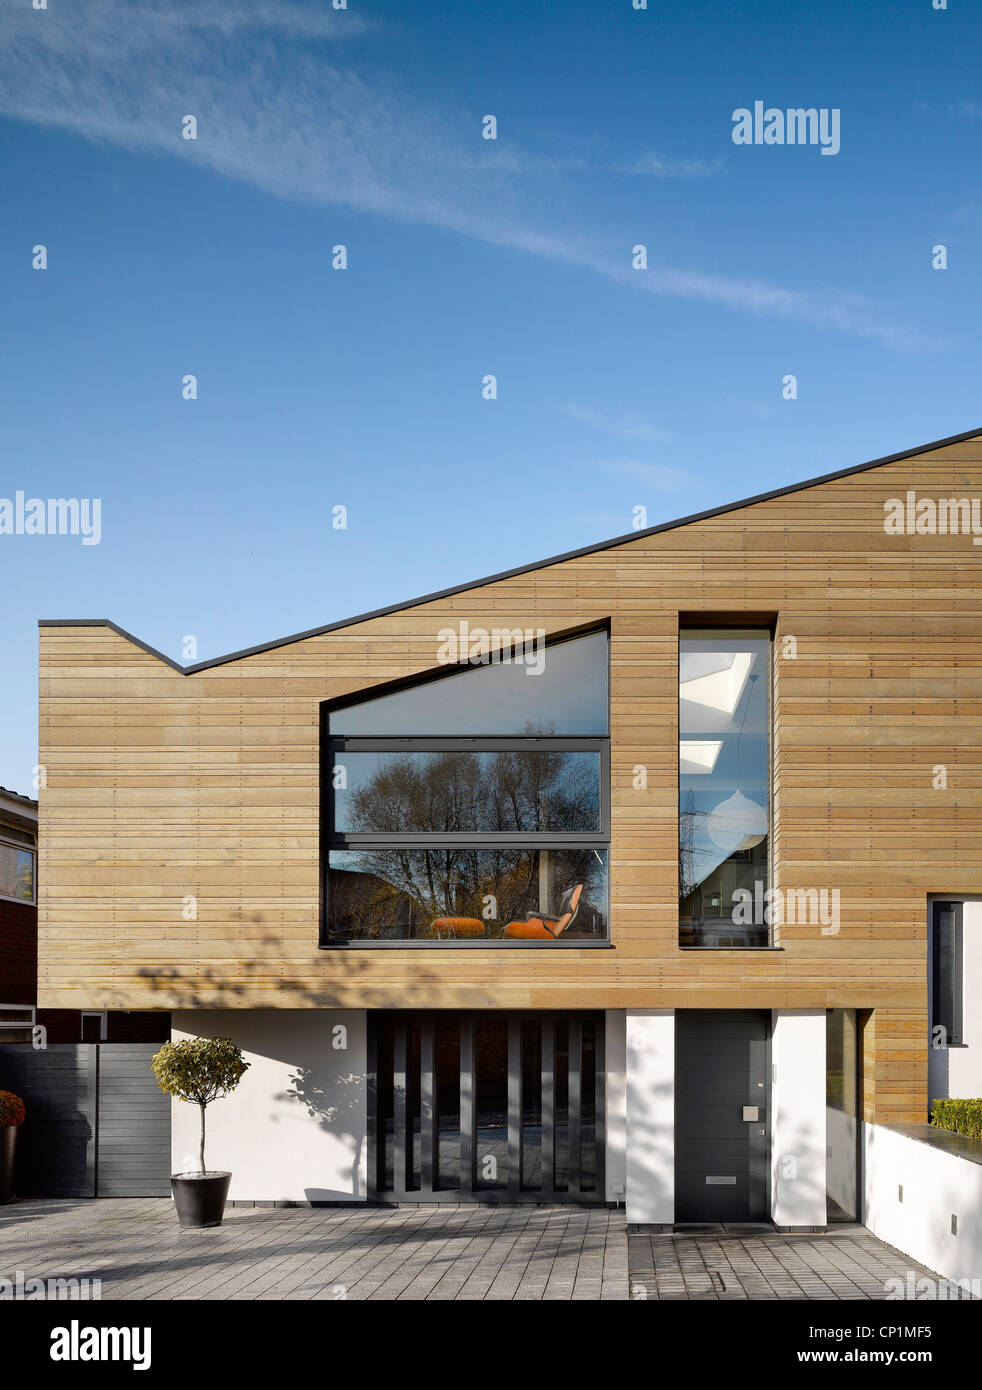 Timber Cladding On Building Exterior Of Private House In Worsley, Salford,  Greater Manchester, England, UK.